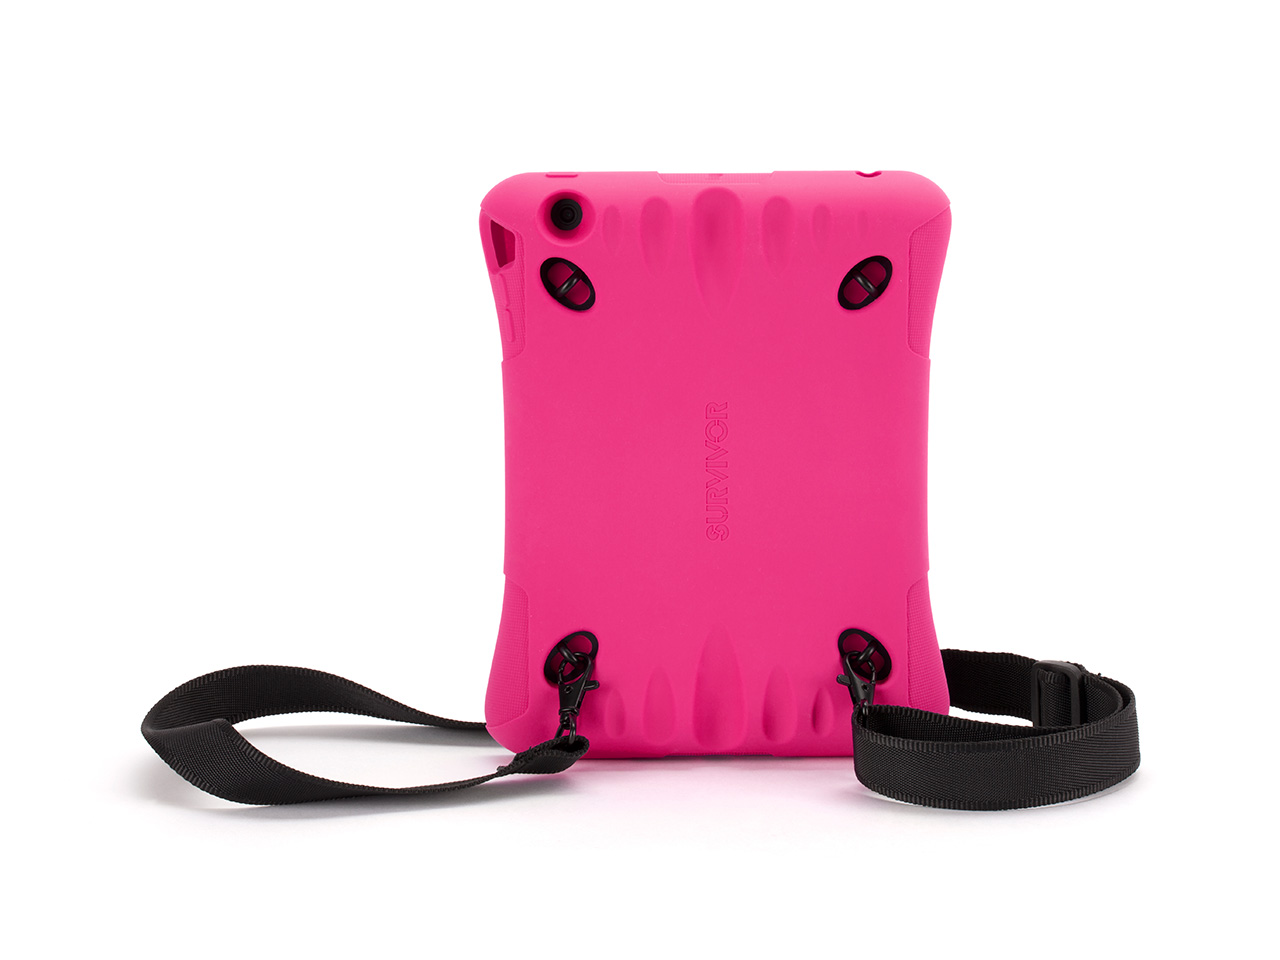 Hot Pink Survivor Play Protective Case for iPad mini